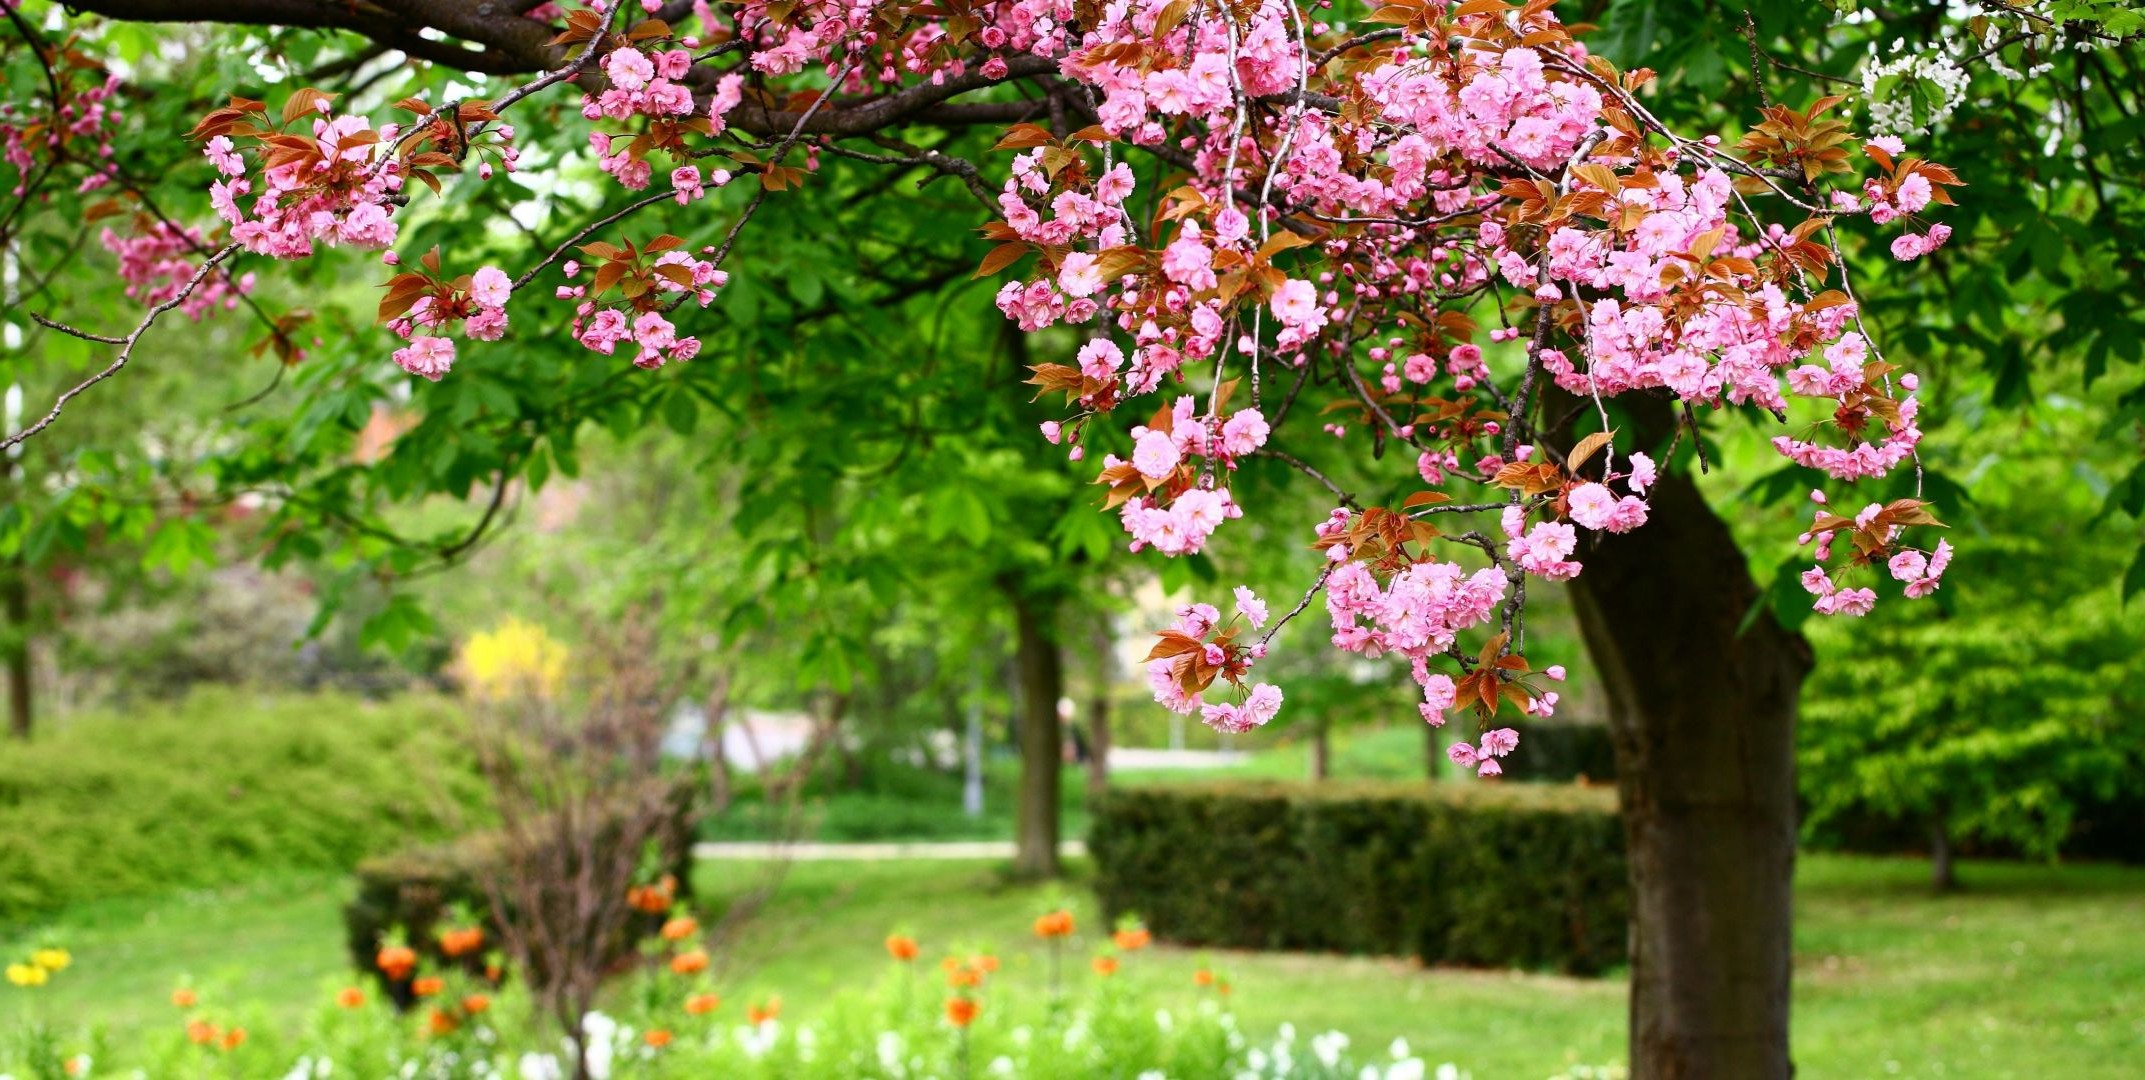 spring flower garden tree nature flora blooming leaf growth summer branch cherry season petal park floral botanical shrub outdoors springtime